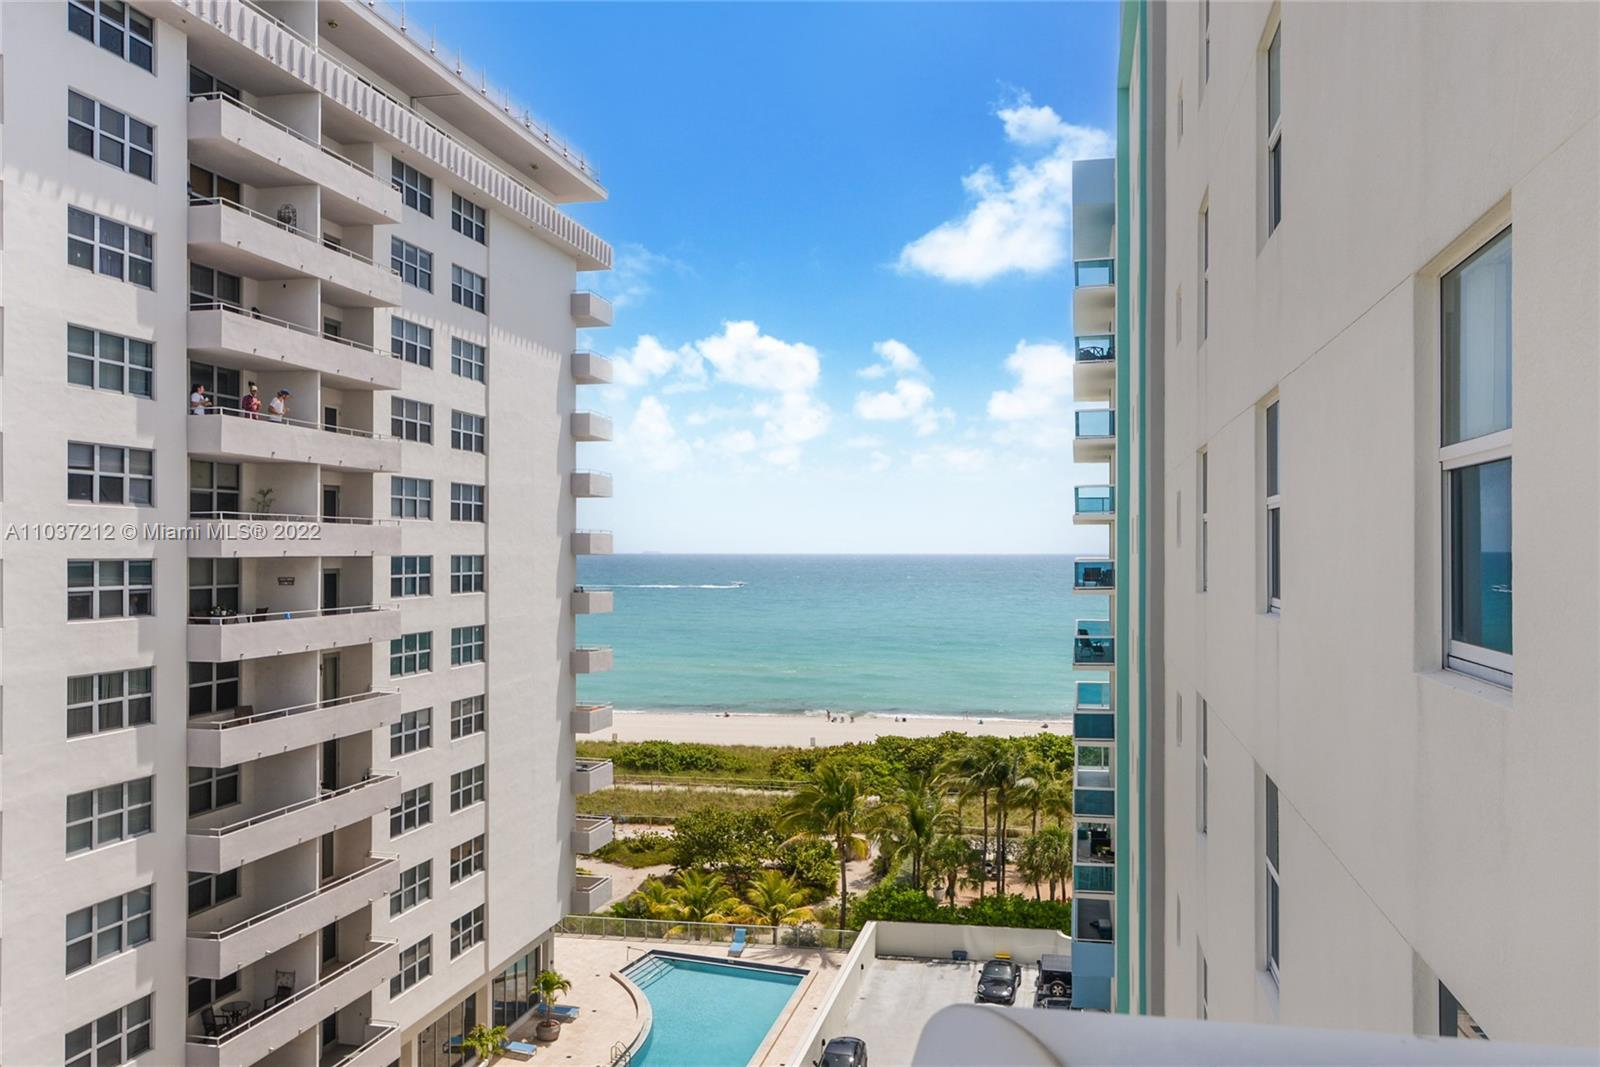 OCEAN FRONT!! Exclusive BOUTIQUE BLDG NW corner unit with 2 beds, 2 baths rarely on the market. Ocean and Sunset views galore. Open Kitchen, Large Master Bath and Walk in Closet. Great Building Amenities: 2 Heated Pools with Jacuzzi, Ocean Lounge, Chairs and Umbrella Service, Barbeque, Beach Volleyball, Gym, Billiard Room, WIFI in Common Area, Bike Storage. Walking distance to Bal Harbour Shops, Publix, Restaurants and much more. LIVING IN THE HEART OF SURFSIDE BEACH. Unit is occupied until August 30th, 2021. Special assessment $320,00 monthly until December 2023